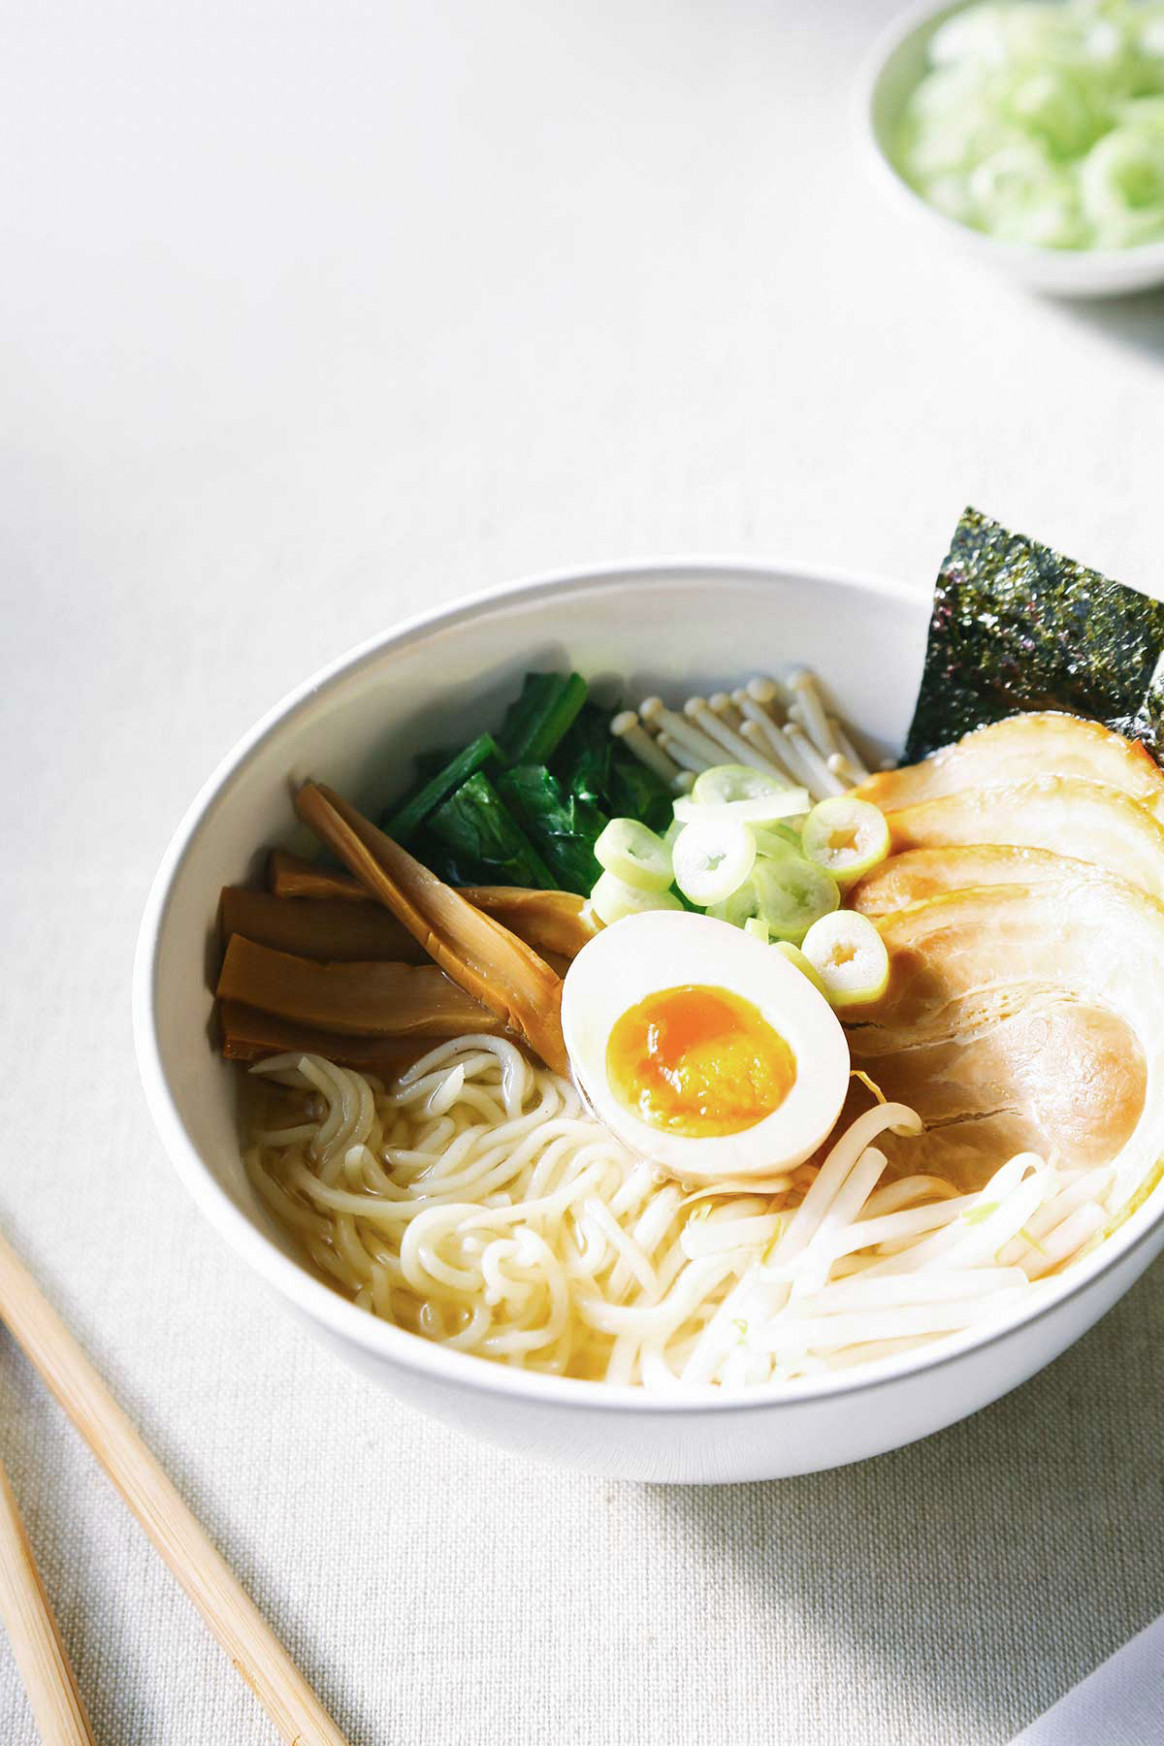 Keto Ramen, Quick and Easy with Low Carb Noodles - Happy Keto